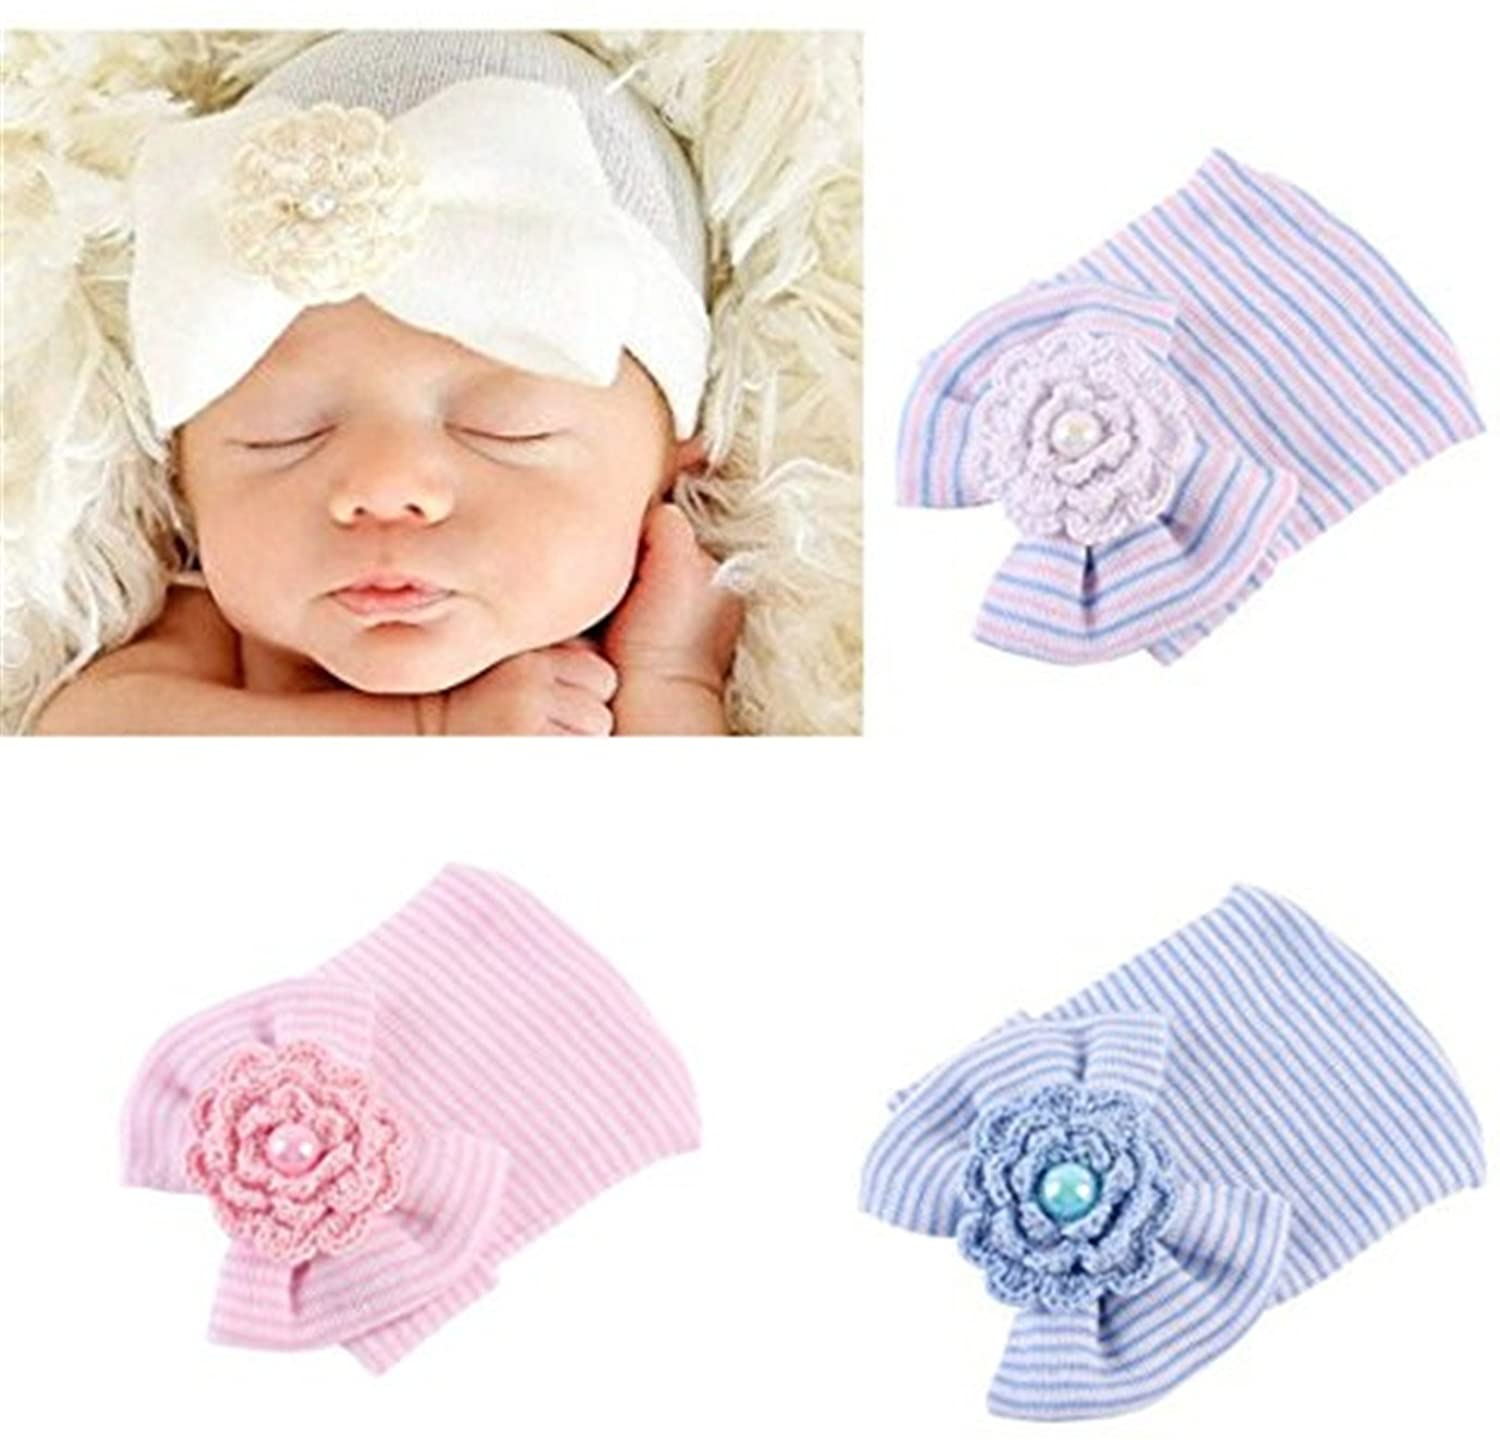 3Pcs Newborn Hospital Hat Infant Baby Hat Cap with Big Bow Soft Cute Knot Nursery Beanie